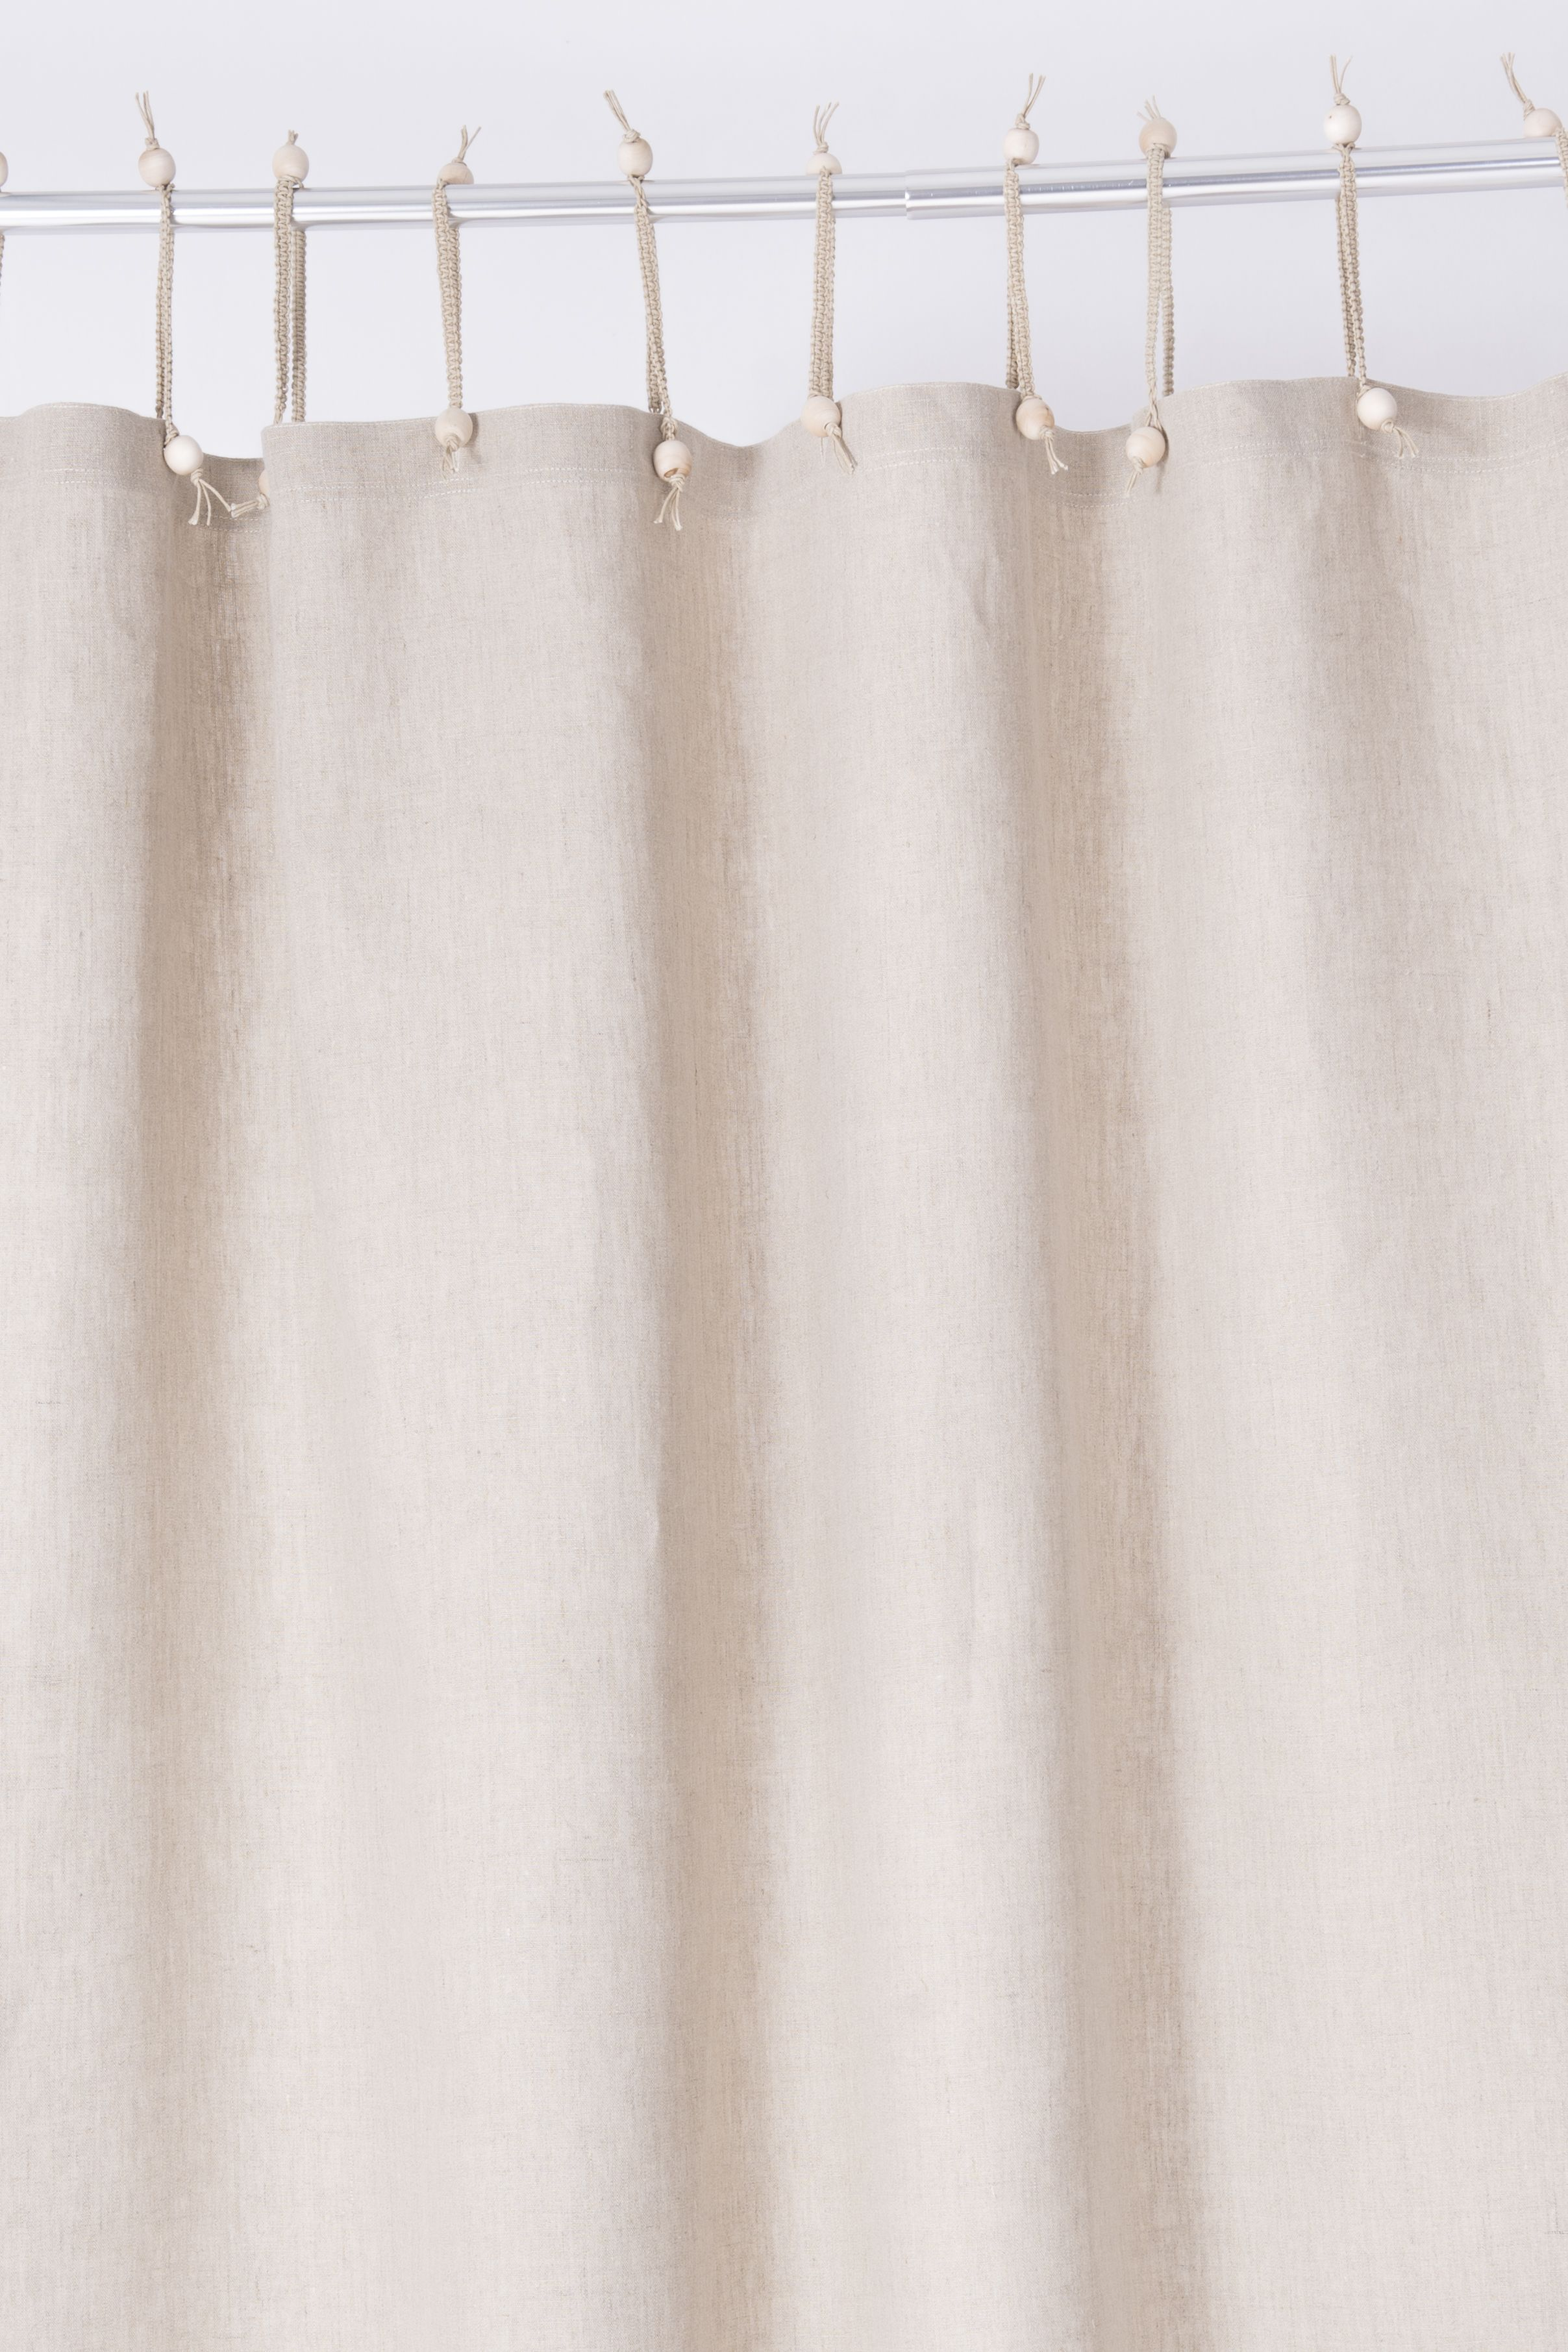 These Undyed Hemp Shower Curtains Are Naturally Elegant In Their